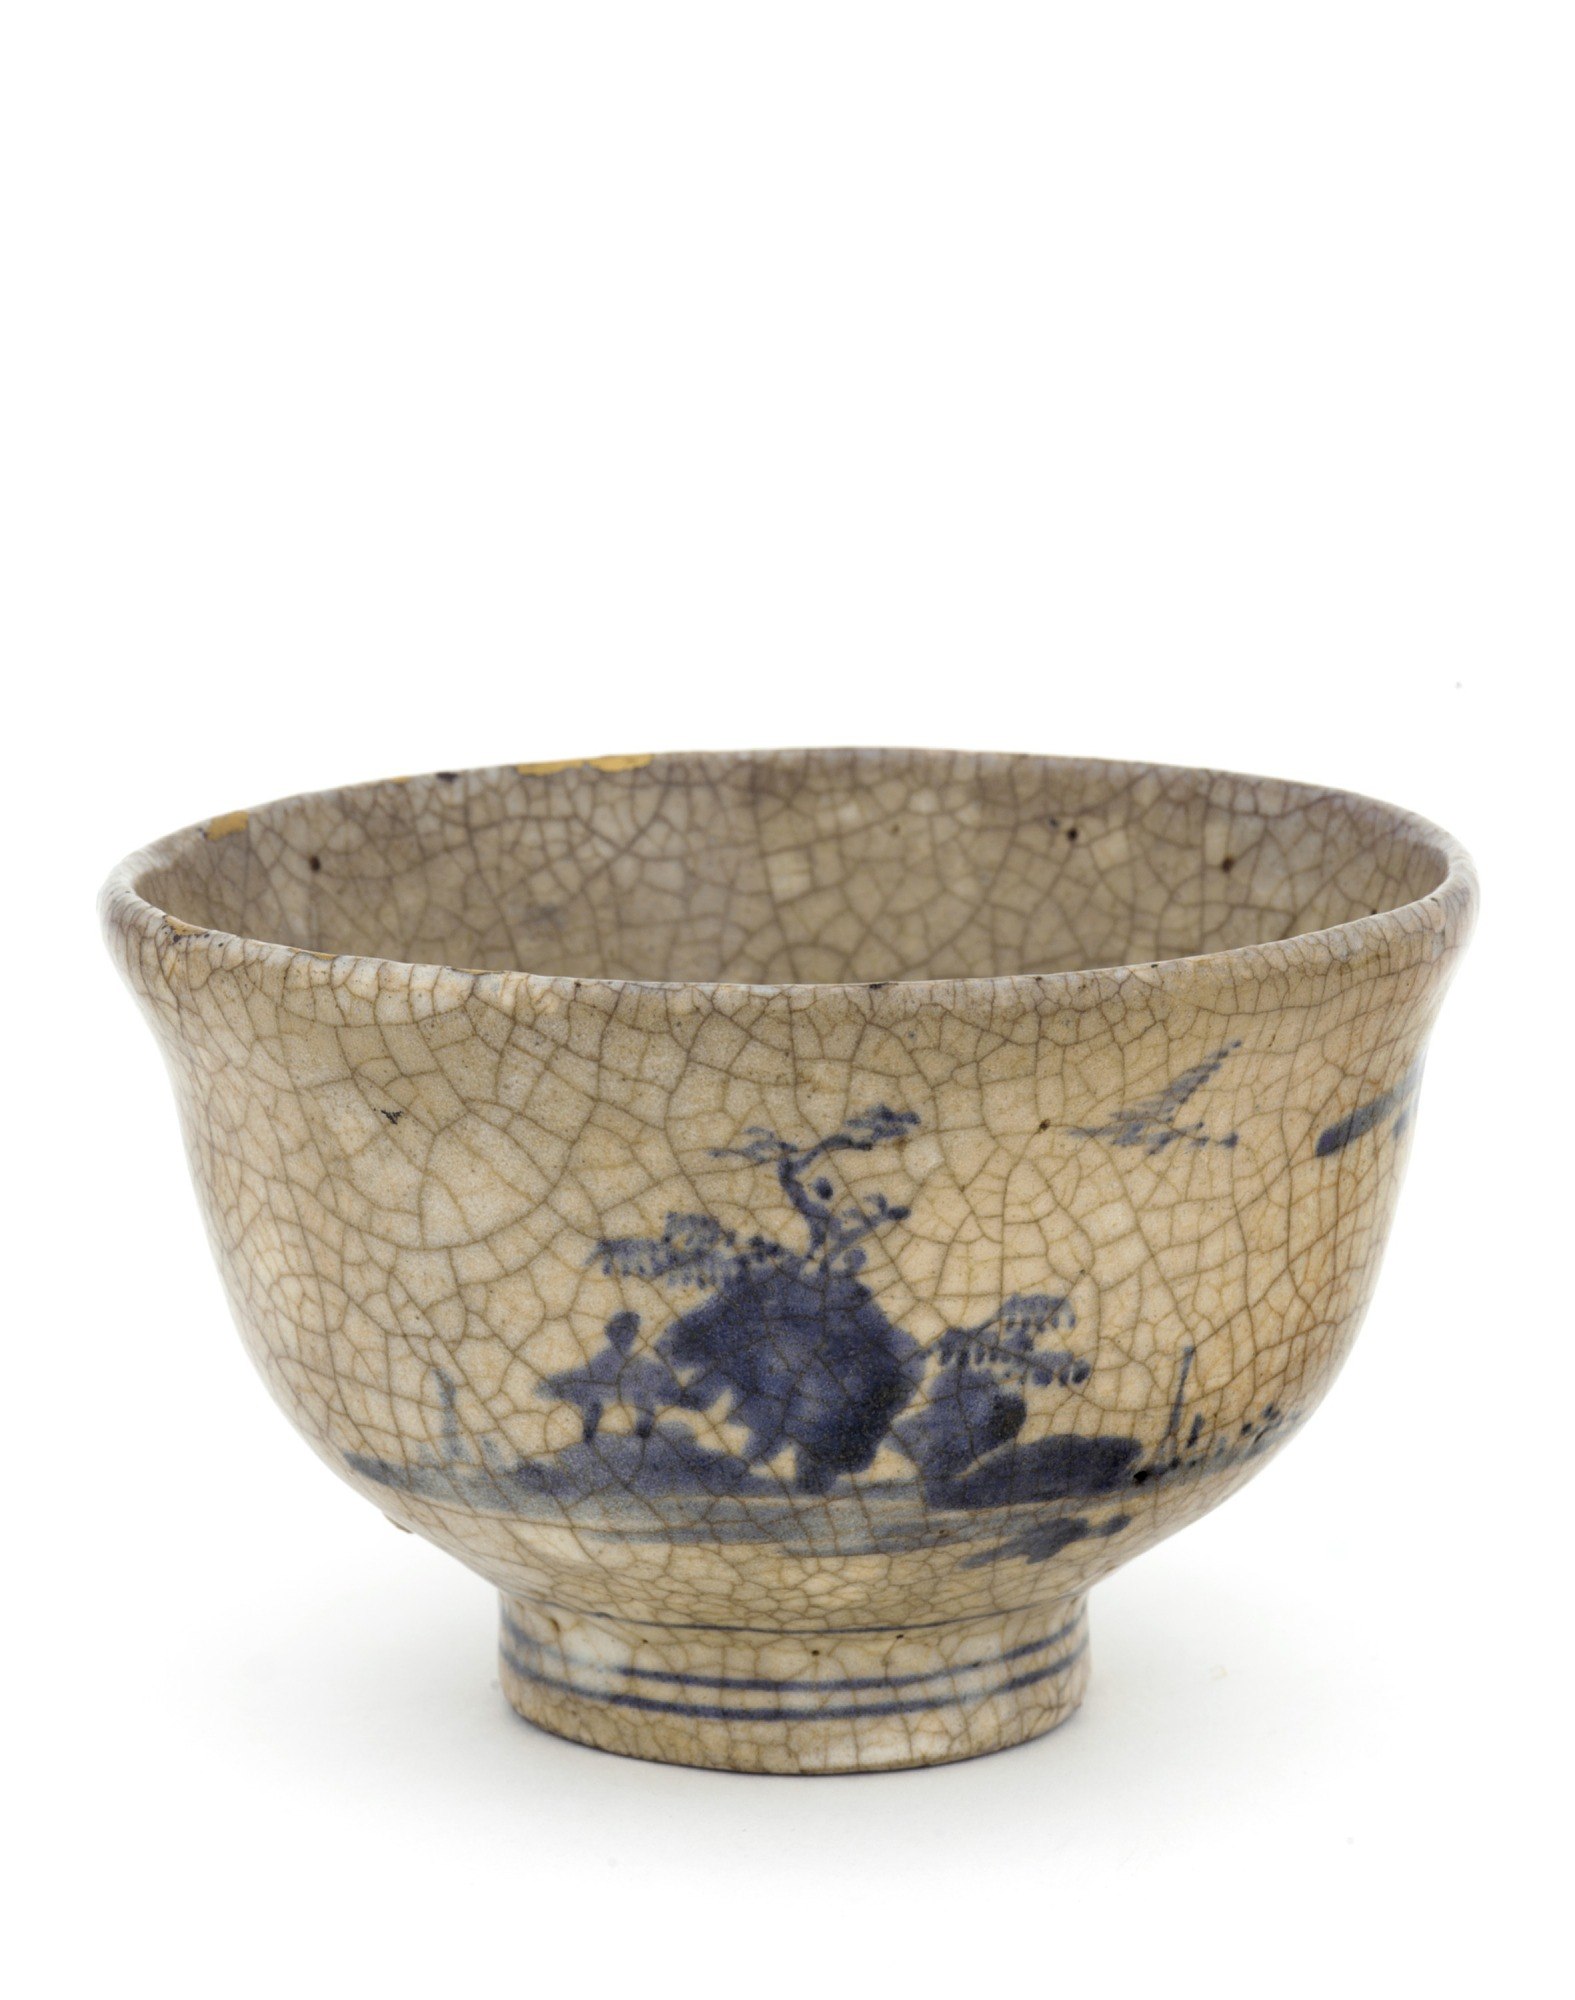 Arita ware tea bowl with landscape design